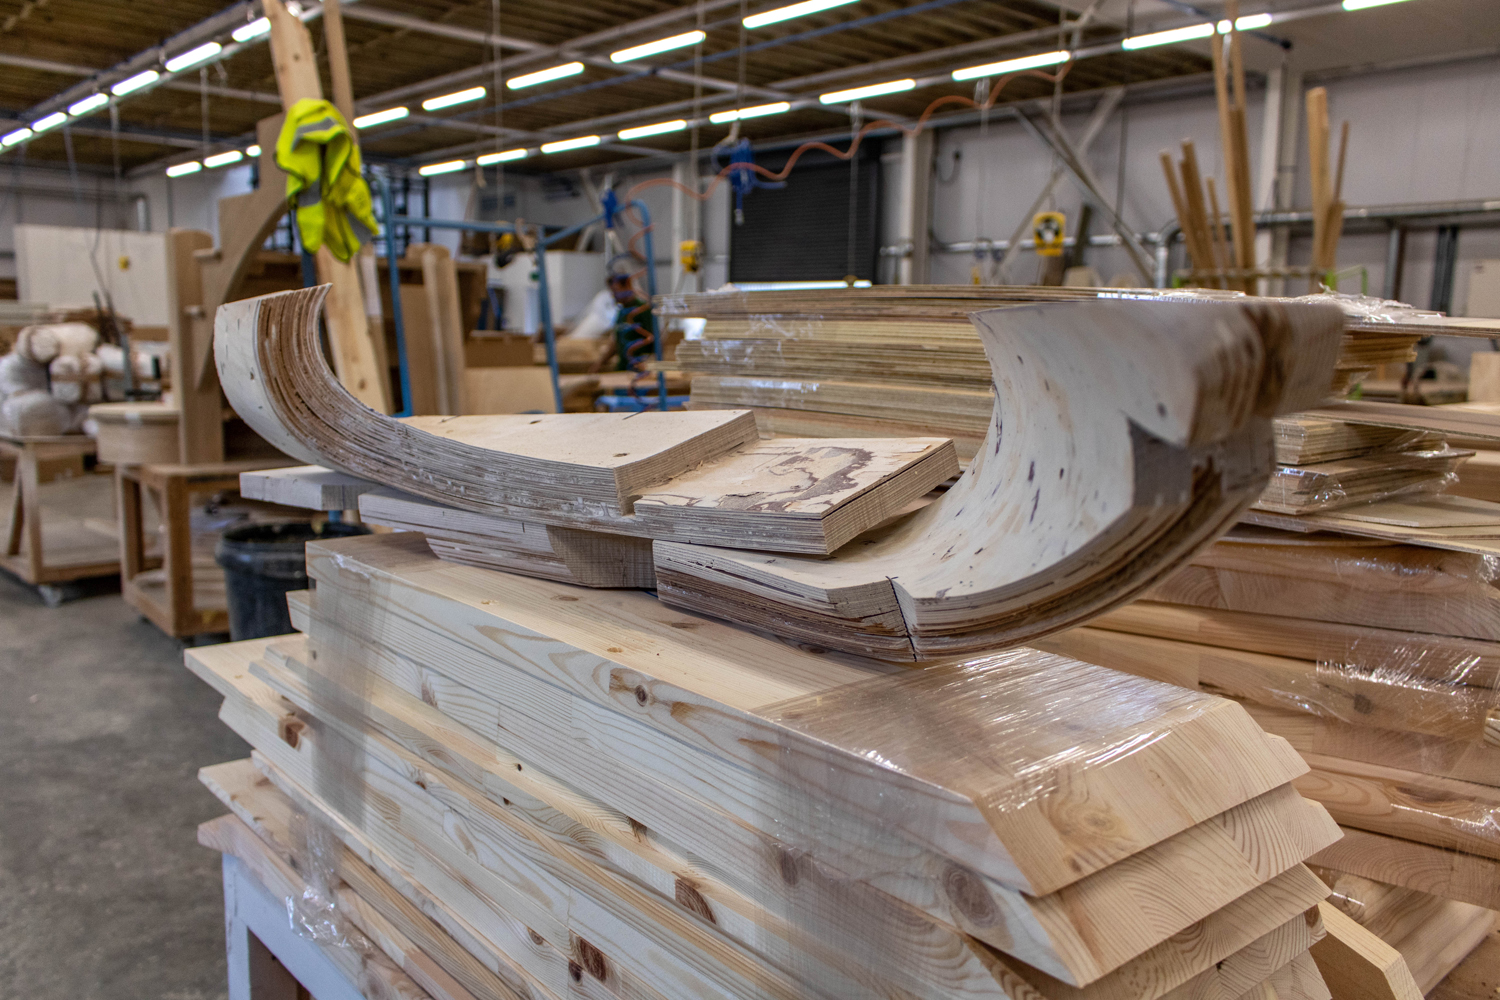 bespoke curved wood in joinery workshop